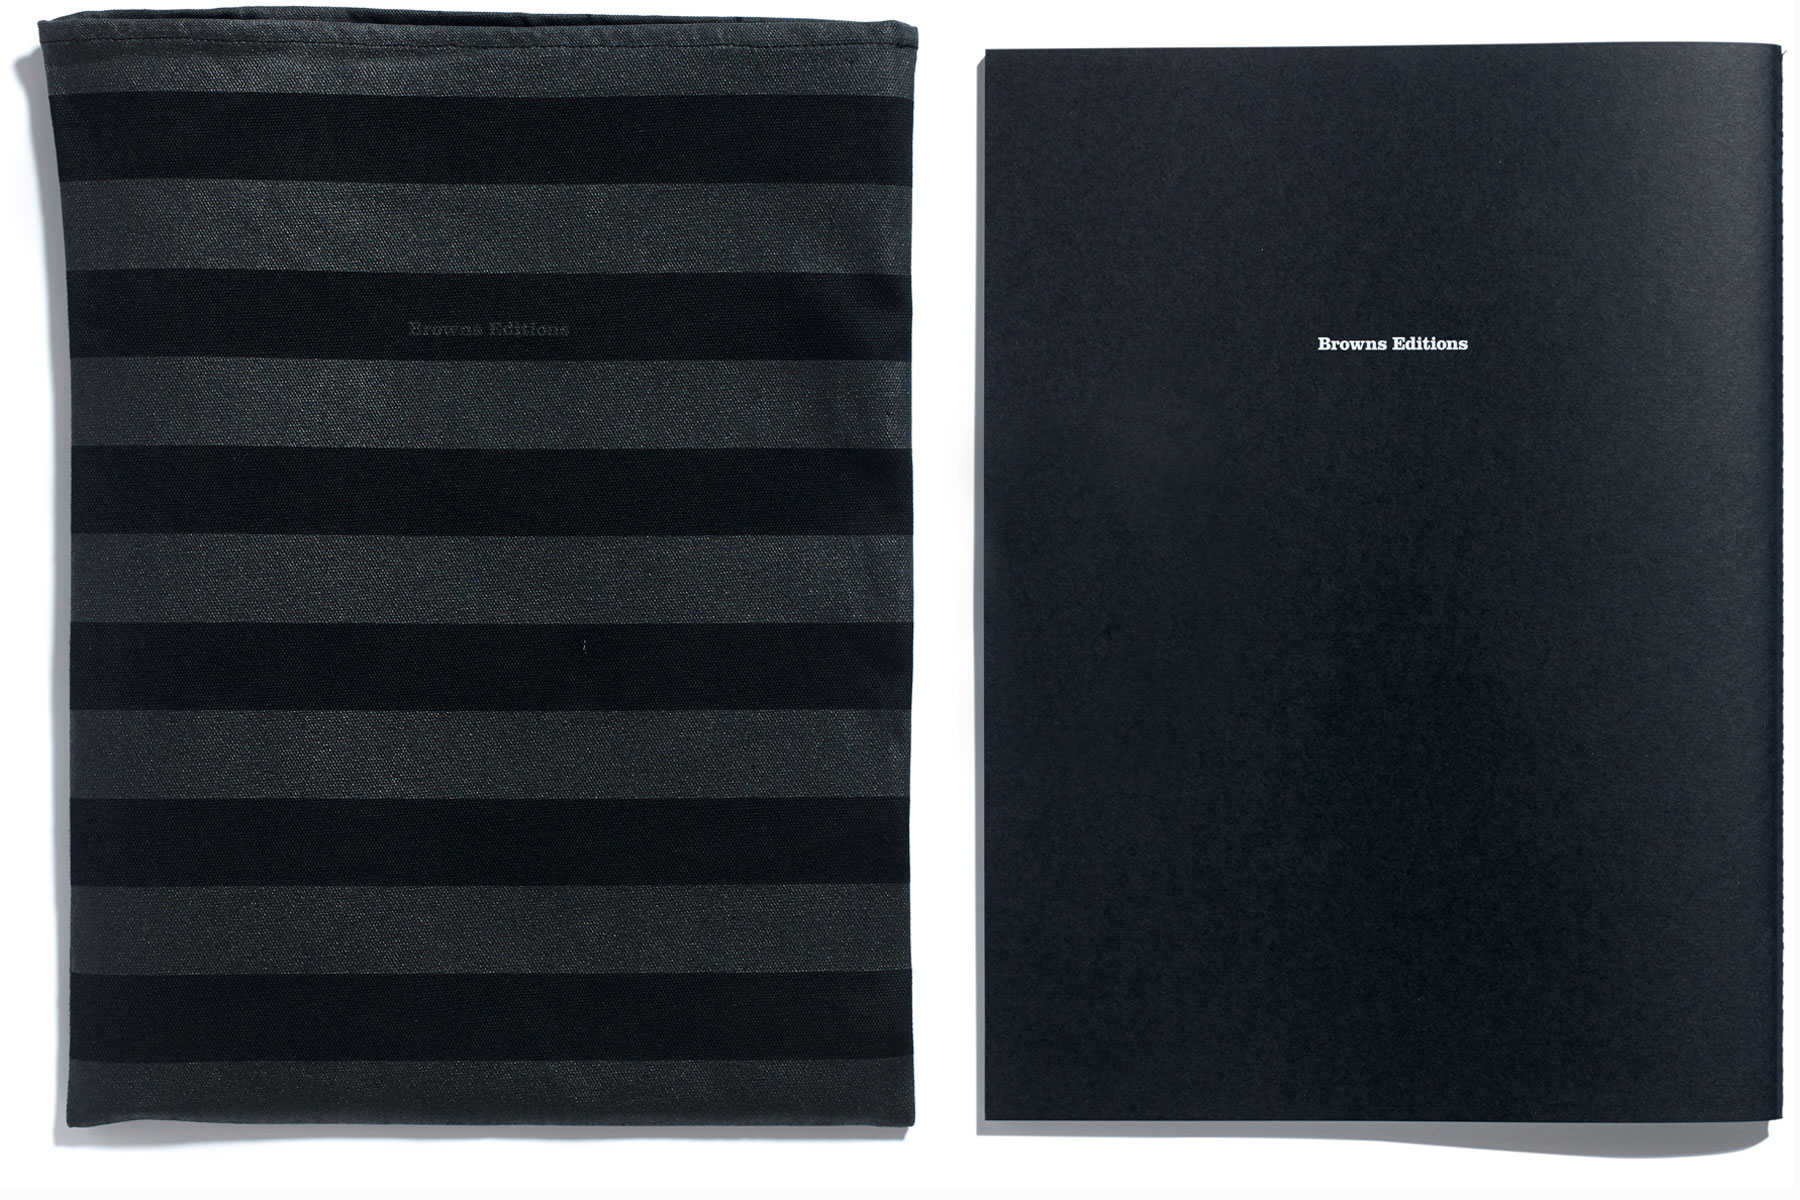 Foreclosures, Bruce Gilden, published by Browns Editions